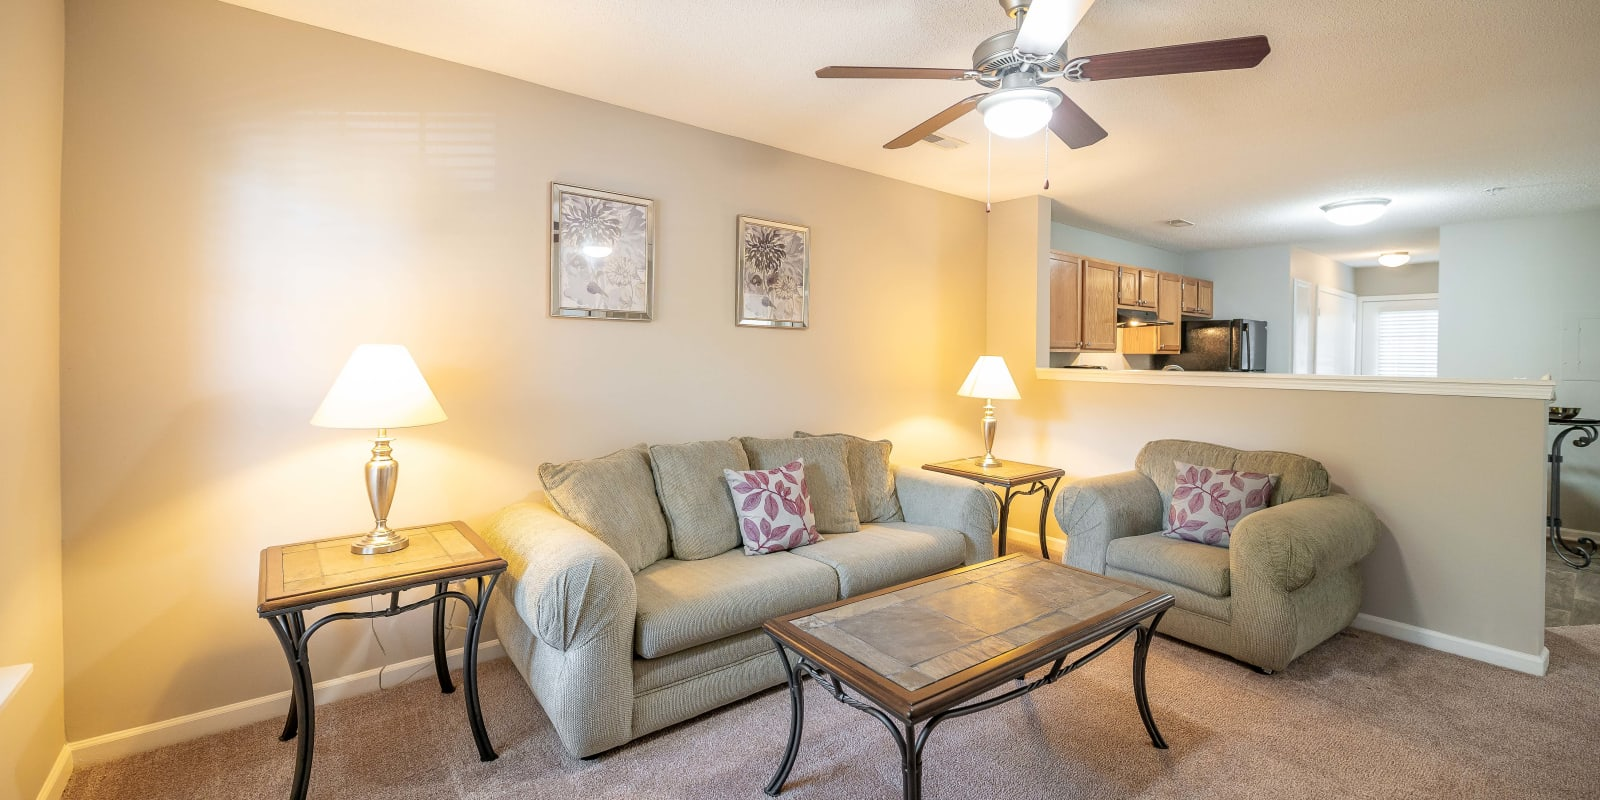 Spacious living room with a ceiling fan at The Village at Brierfield Apartment Homes in Charlotte, North Carolina